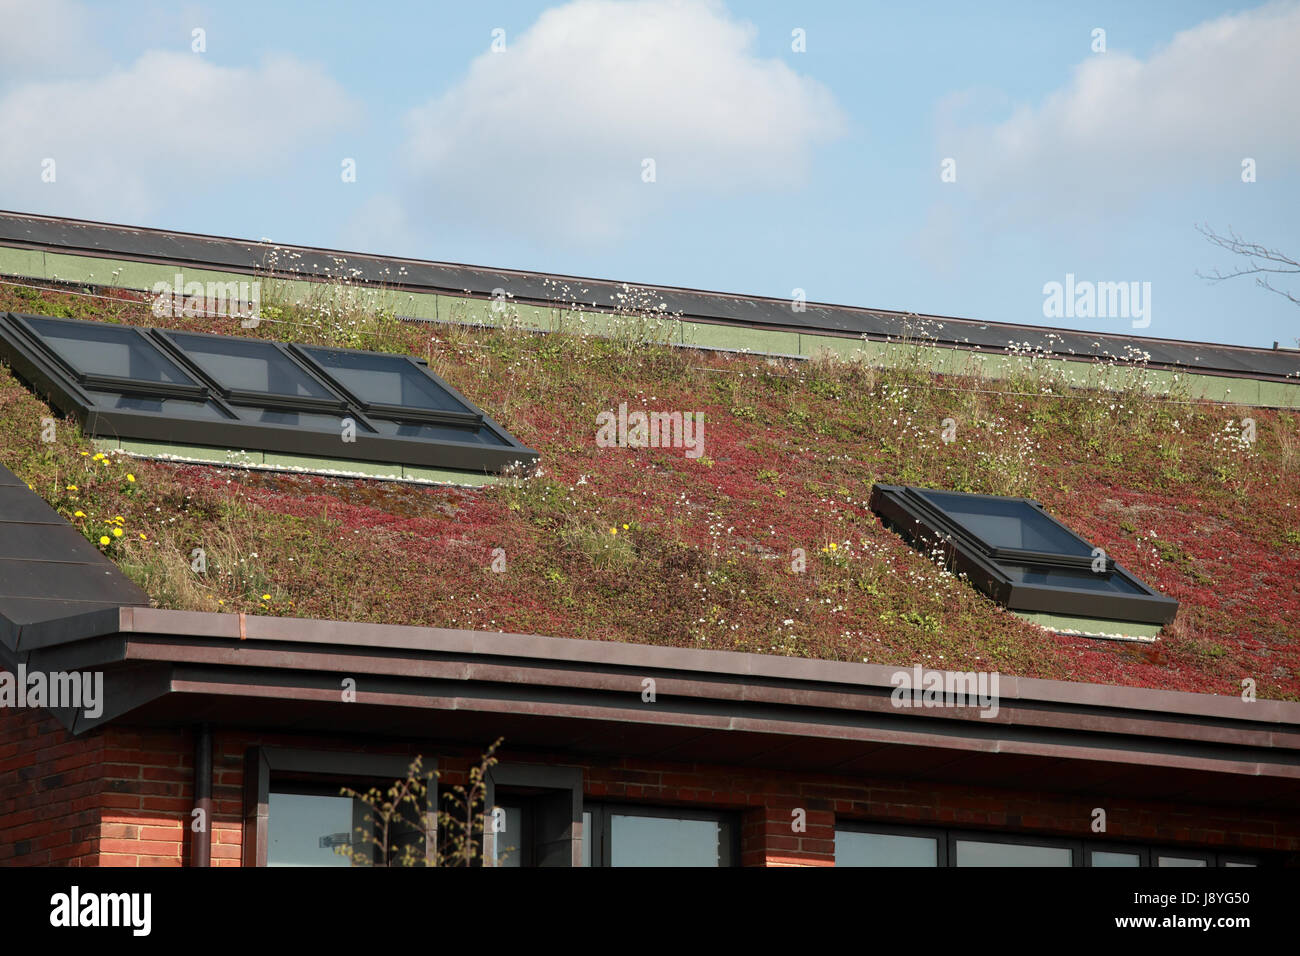 The roof of Market Drayton's low energy Police Station built with a green sedum mat and solar photovoltaic panels - Stock Image